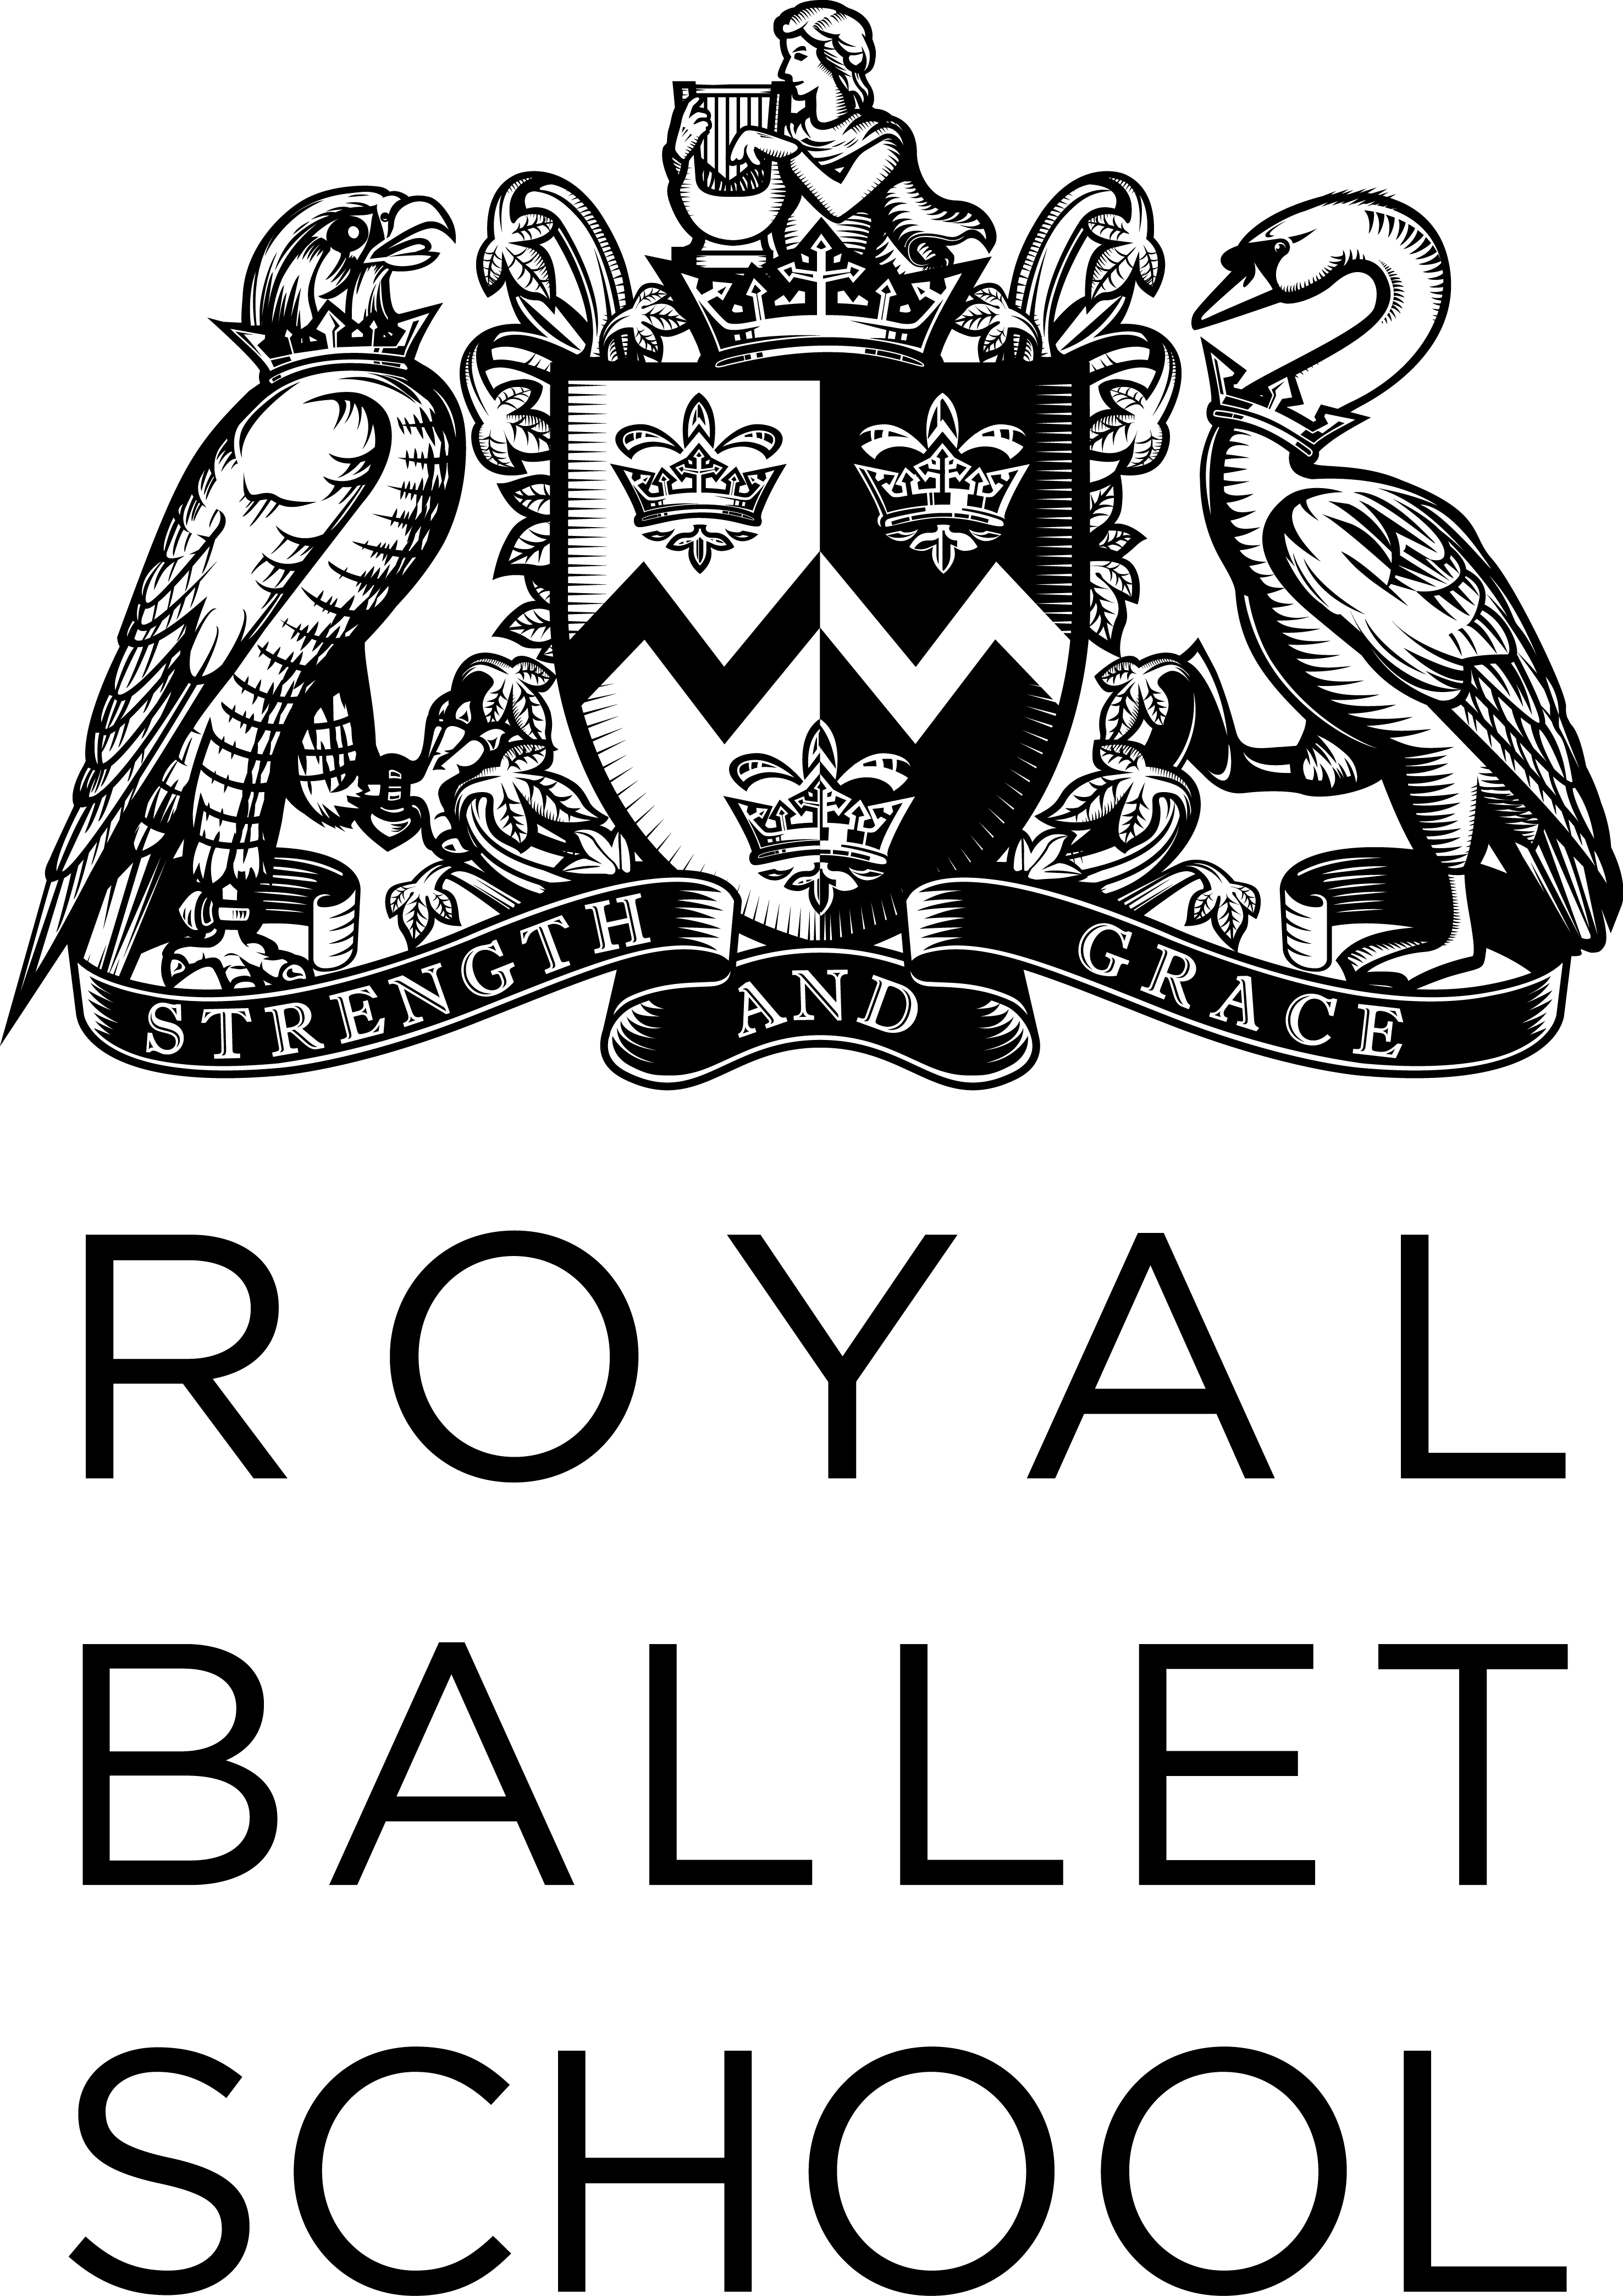 The Royal Ballet School unveils its new branding - The ...